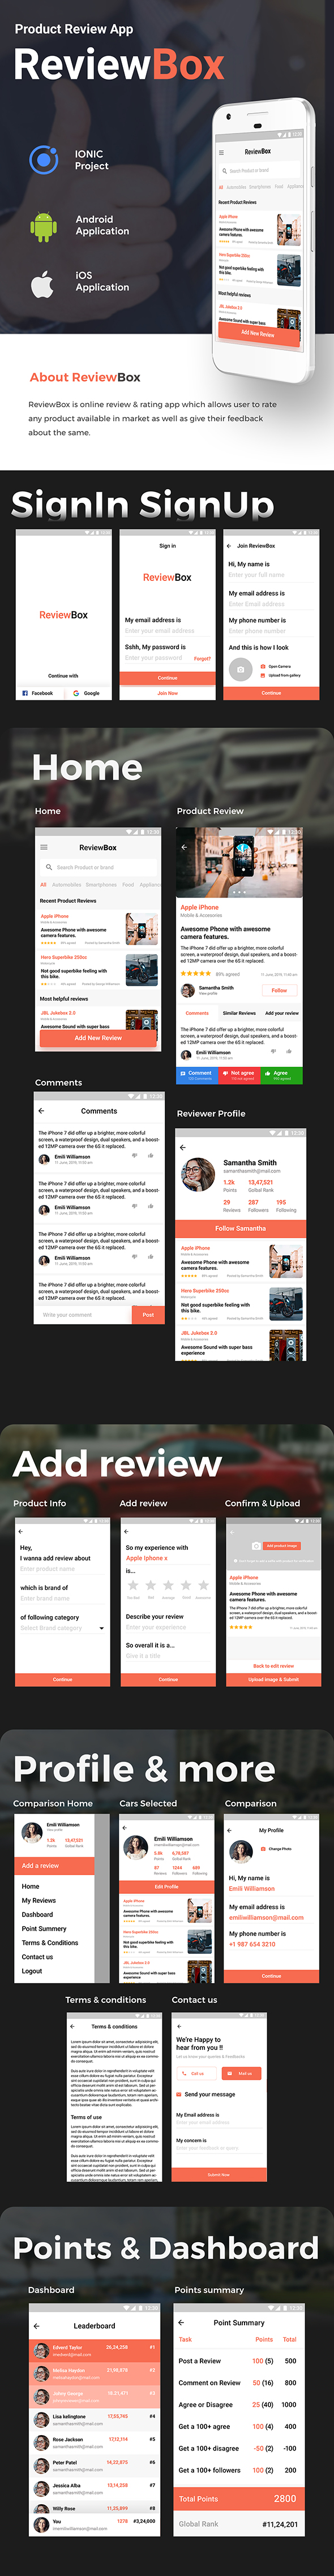 Online Review Android + iOS App Template | HTML + Css IONIC 3 | ReviewBox - 2